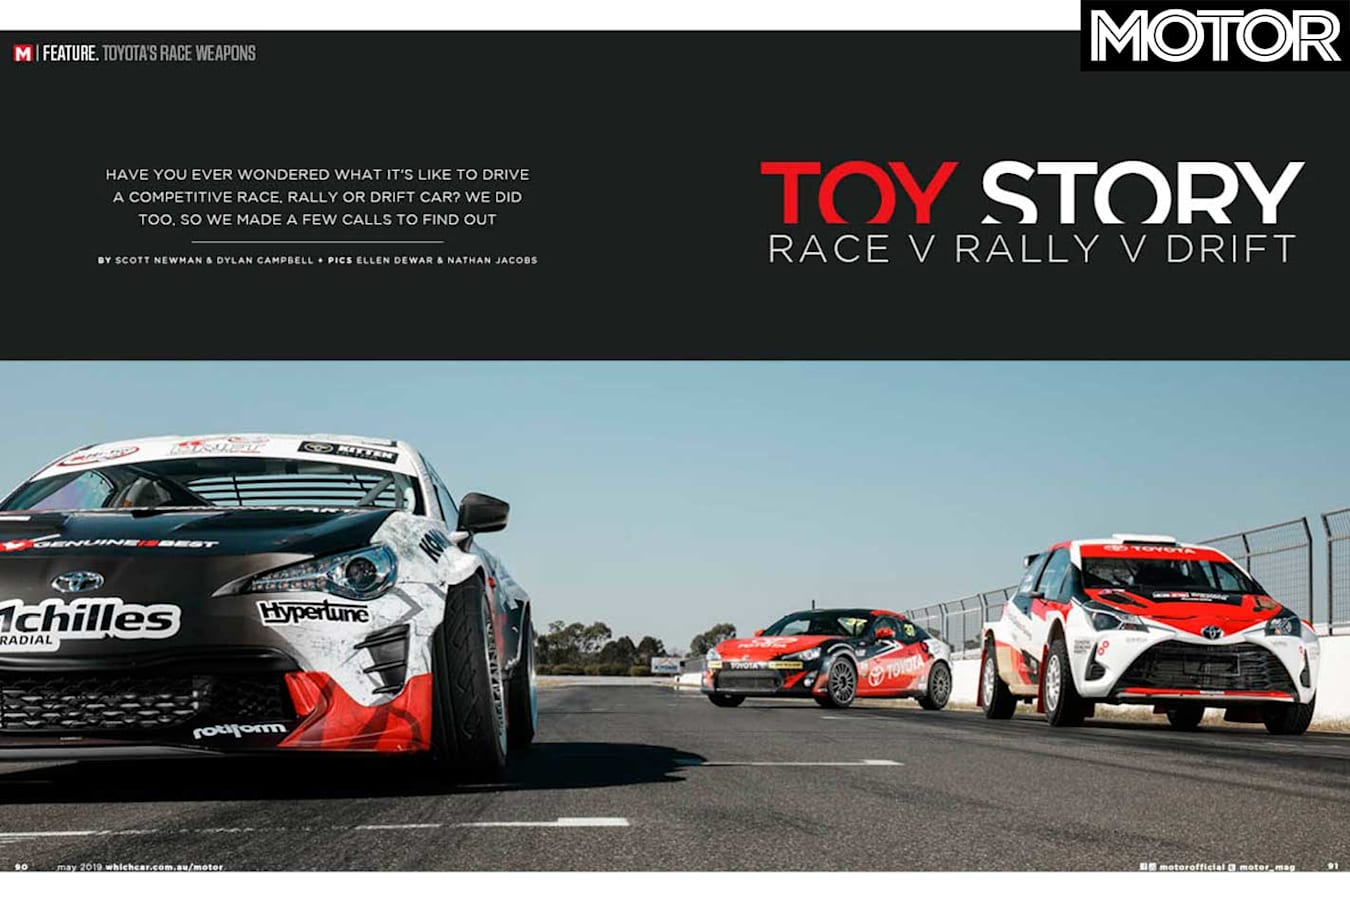 MOTOR Magazine May 2019 Issue Preview Toyota Yaris AP 4 Rally 86 Racing Series 86 Drift Car Feature Jpg